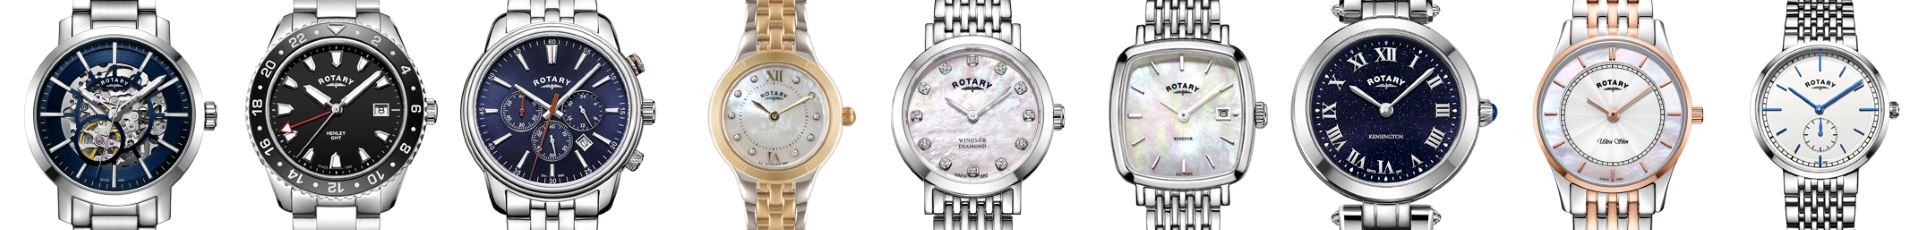 Ladies and Gents Rotary Watches in Carlisle, Cumbria from Nicholson & Coulthard Jewellers